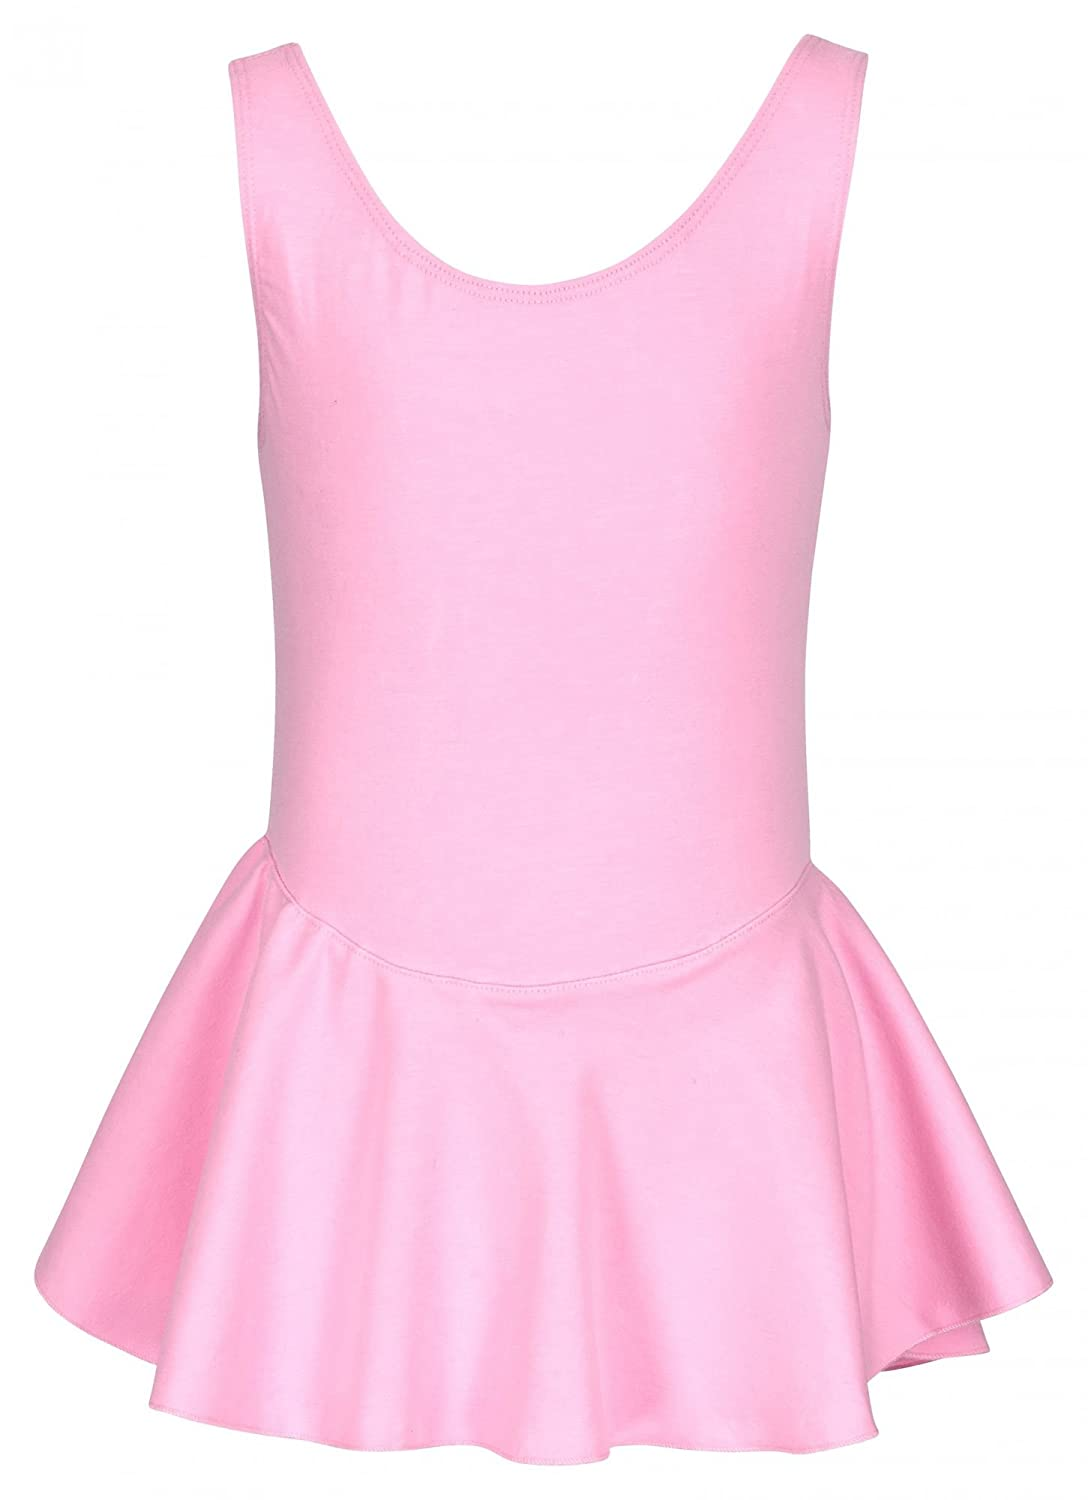 tanzmuster skirted ballet leotard 'Nora' for girls - wide straps - made of very soft and durable cotton blend - in pink, black, white, light blue, hot pink and purple